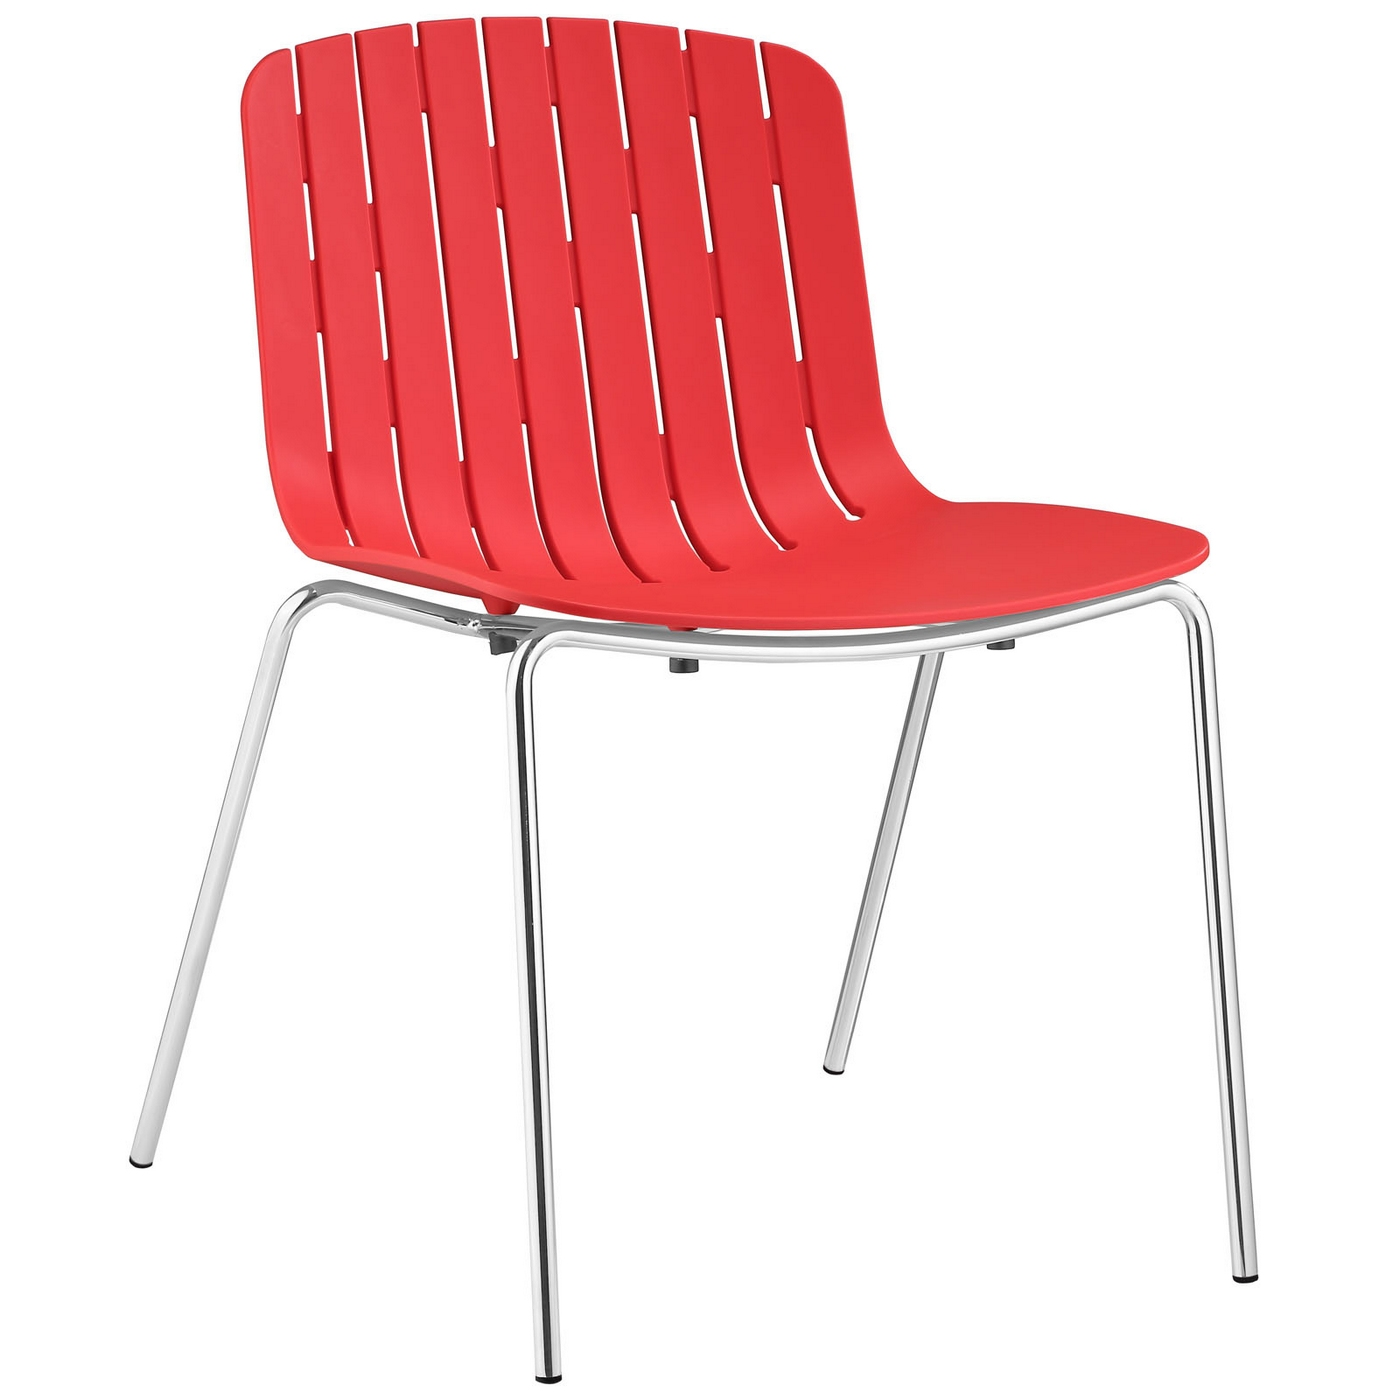 trace modern slat inspired plastic dining side chair with steel frame red. Black Bedroom Furniture Sets. Home Design Ideas